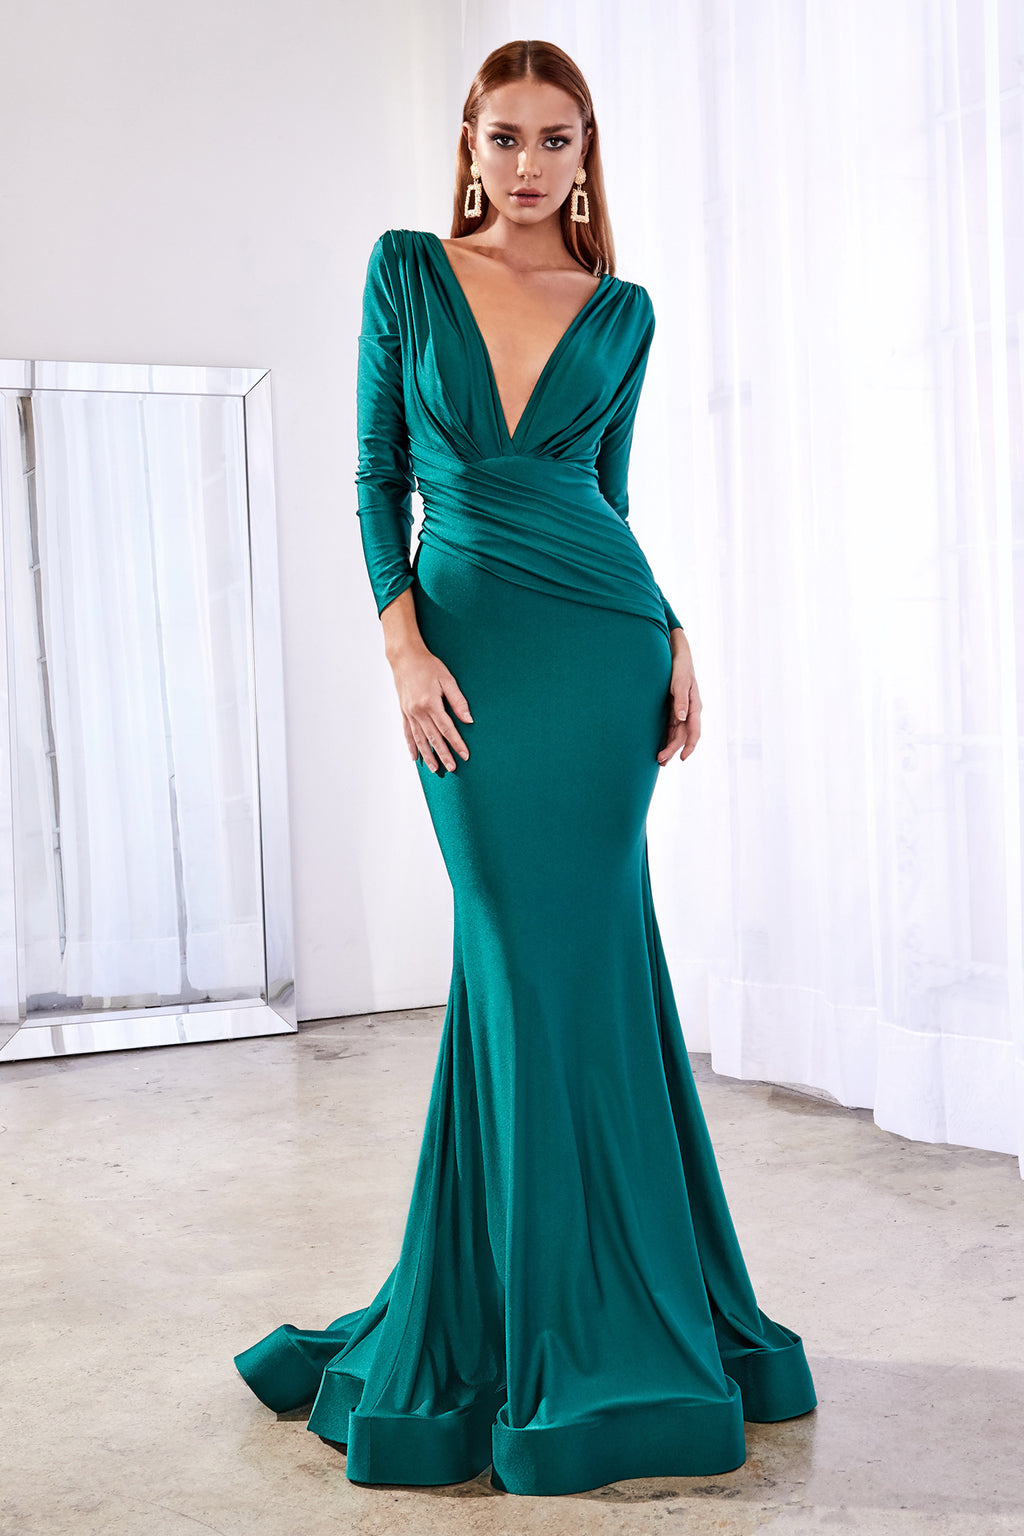 JERSEY GOWN - EMERALD